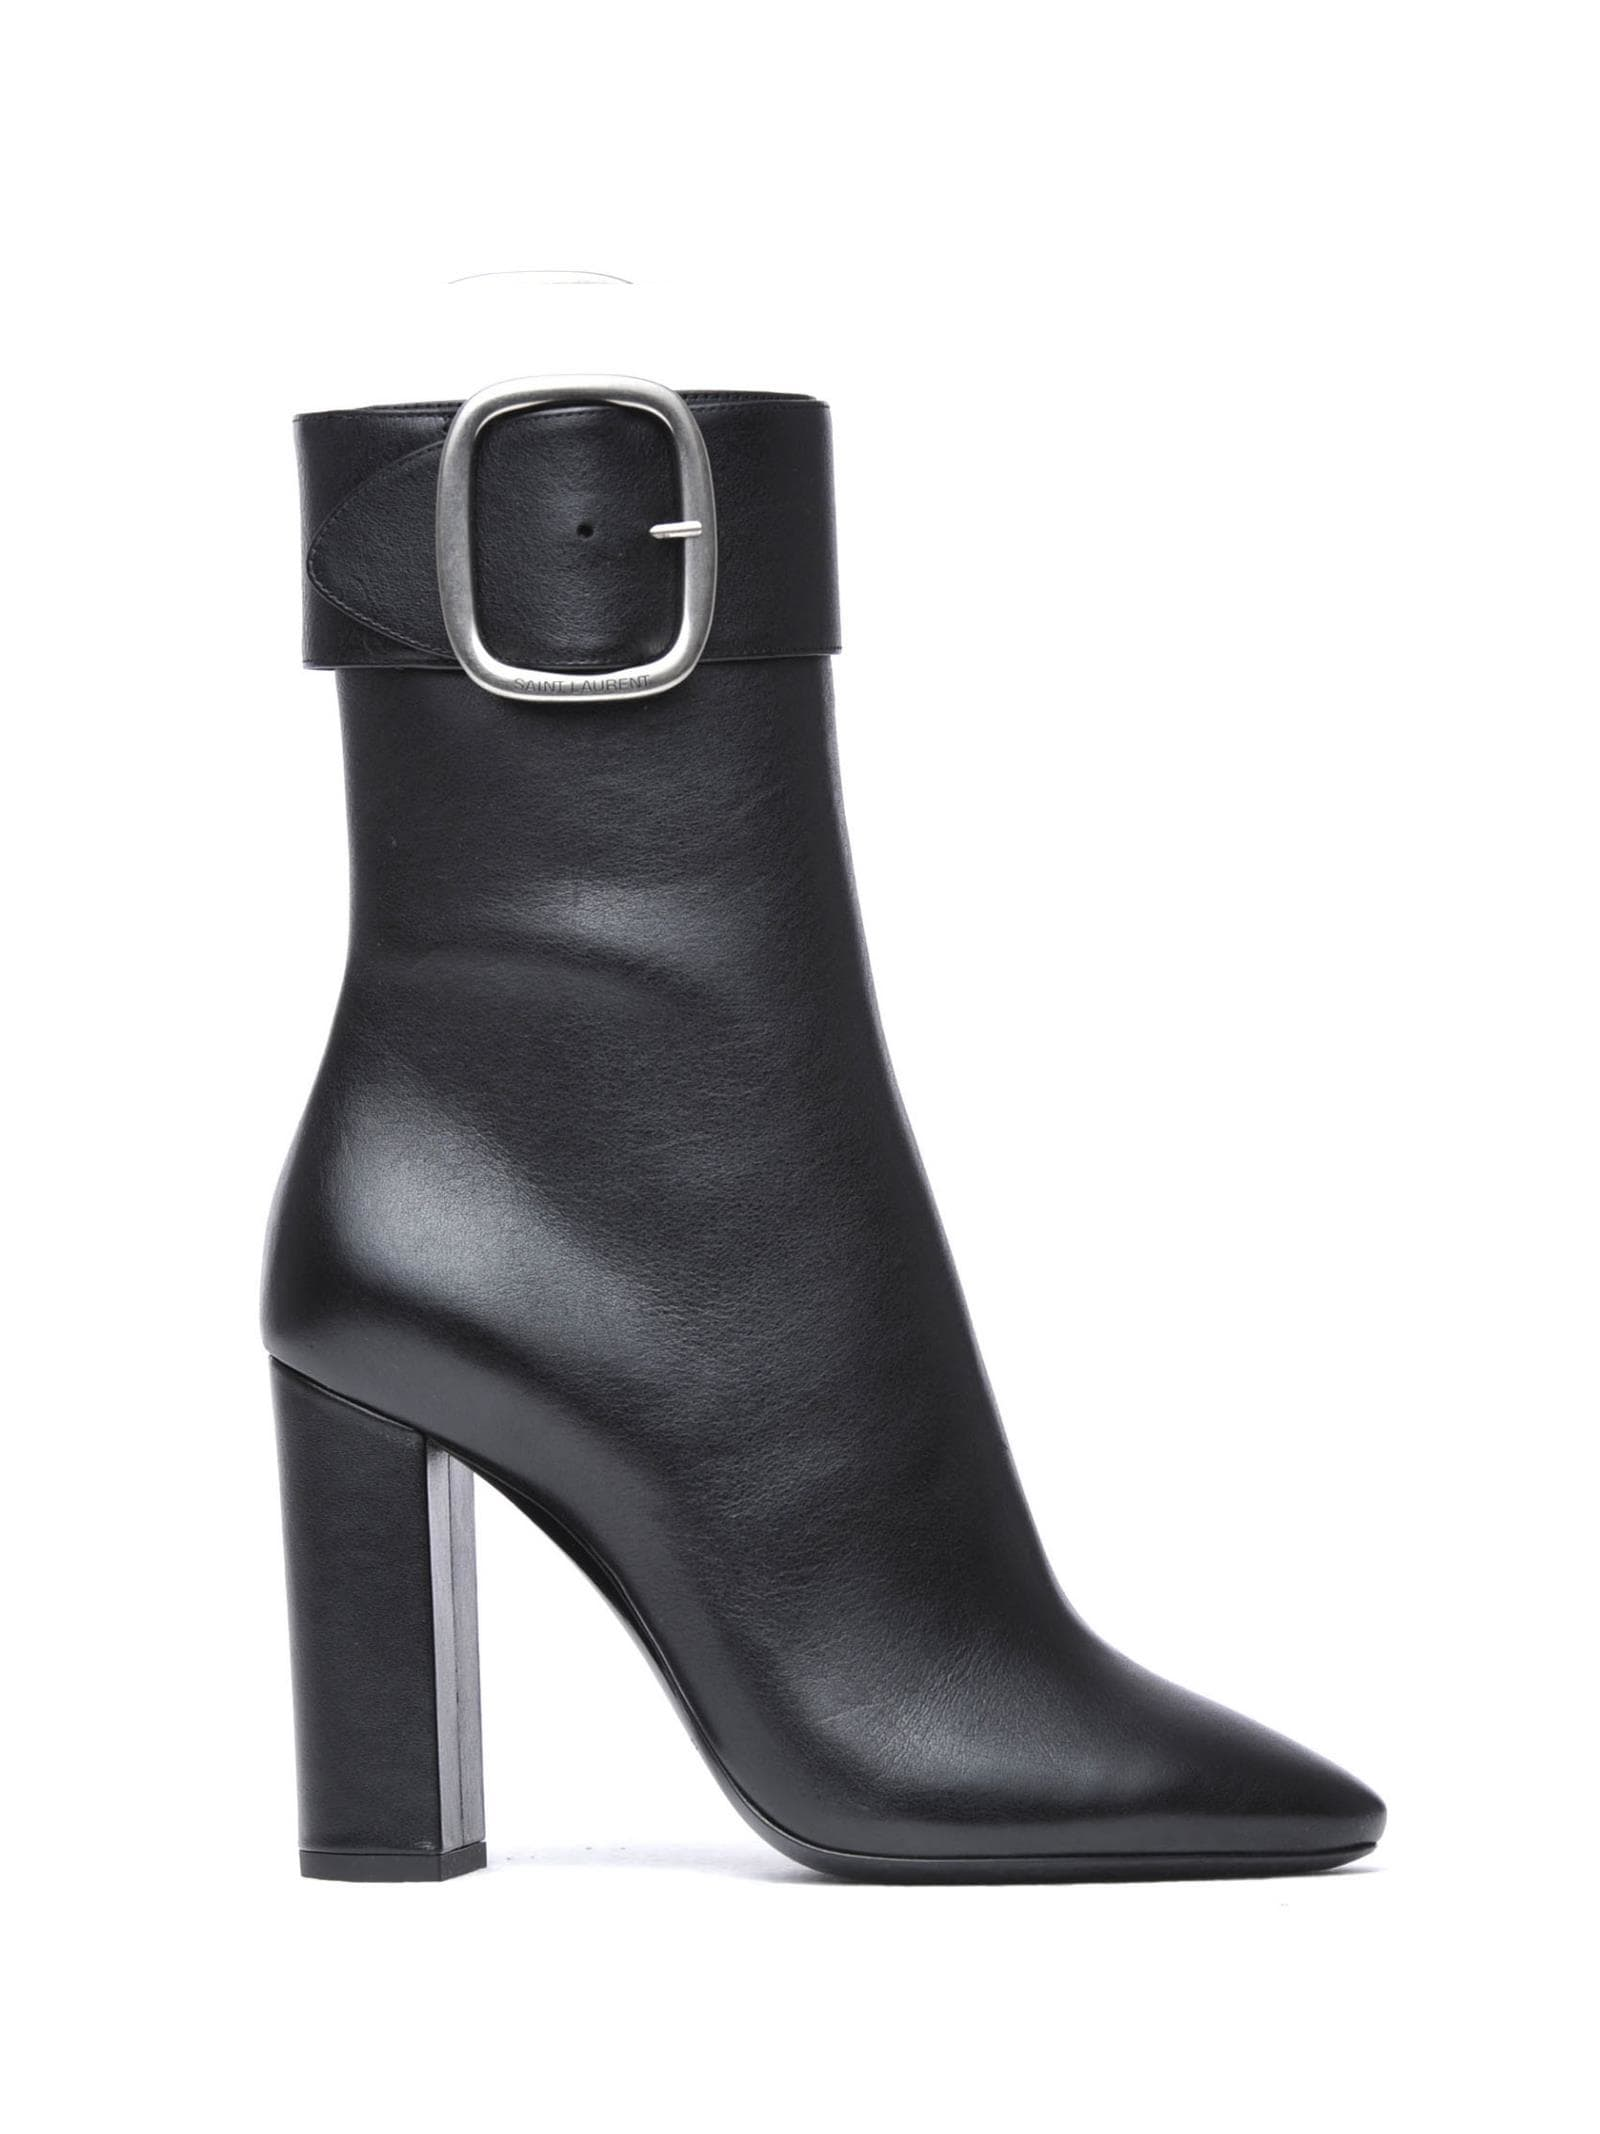 a09d0ac9ff5 Saint Laurent Saint Laurent Joplin Buckle Ankle Boots - NERO ...